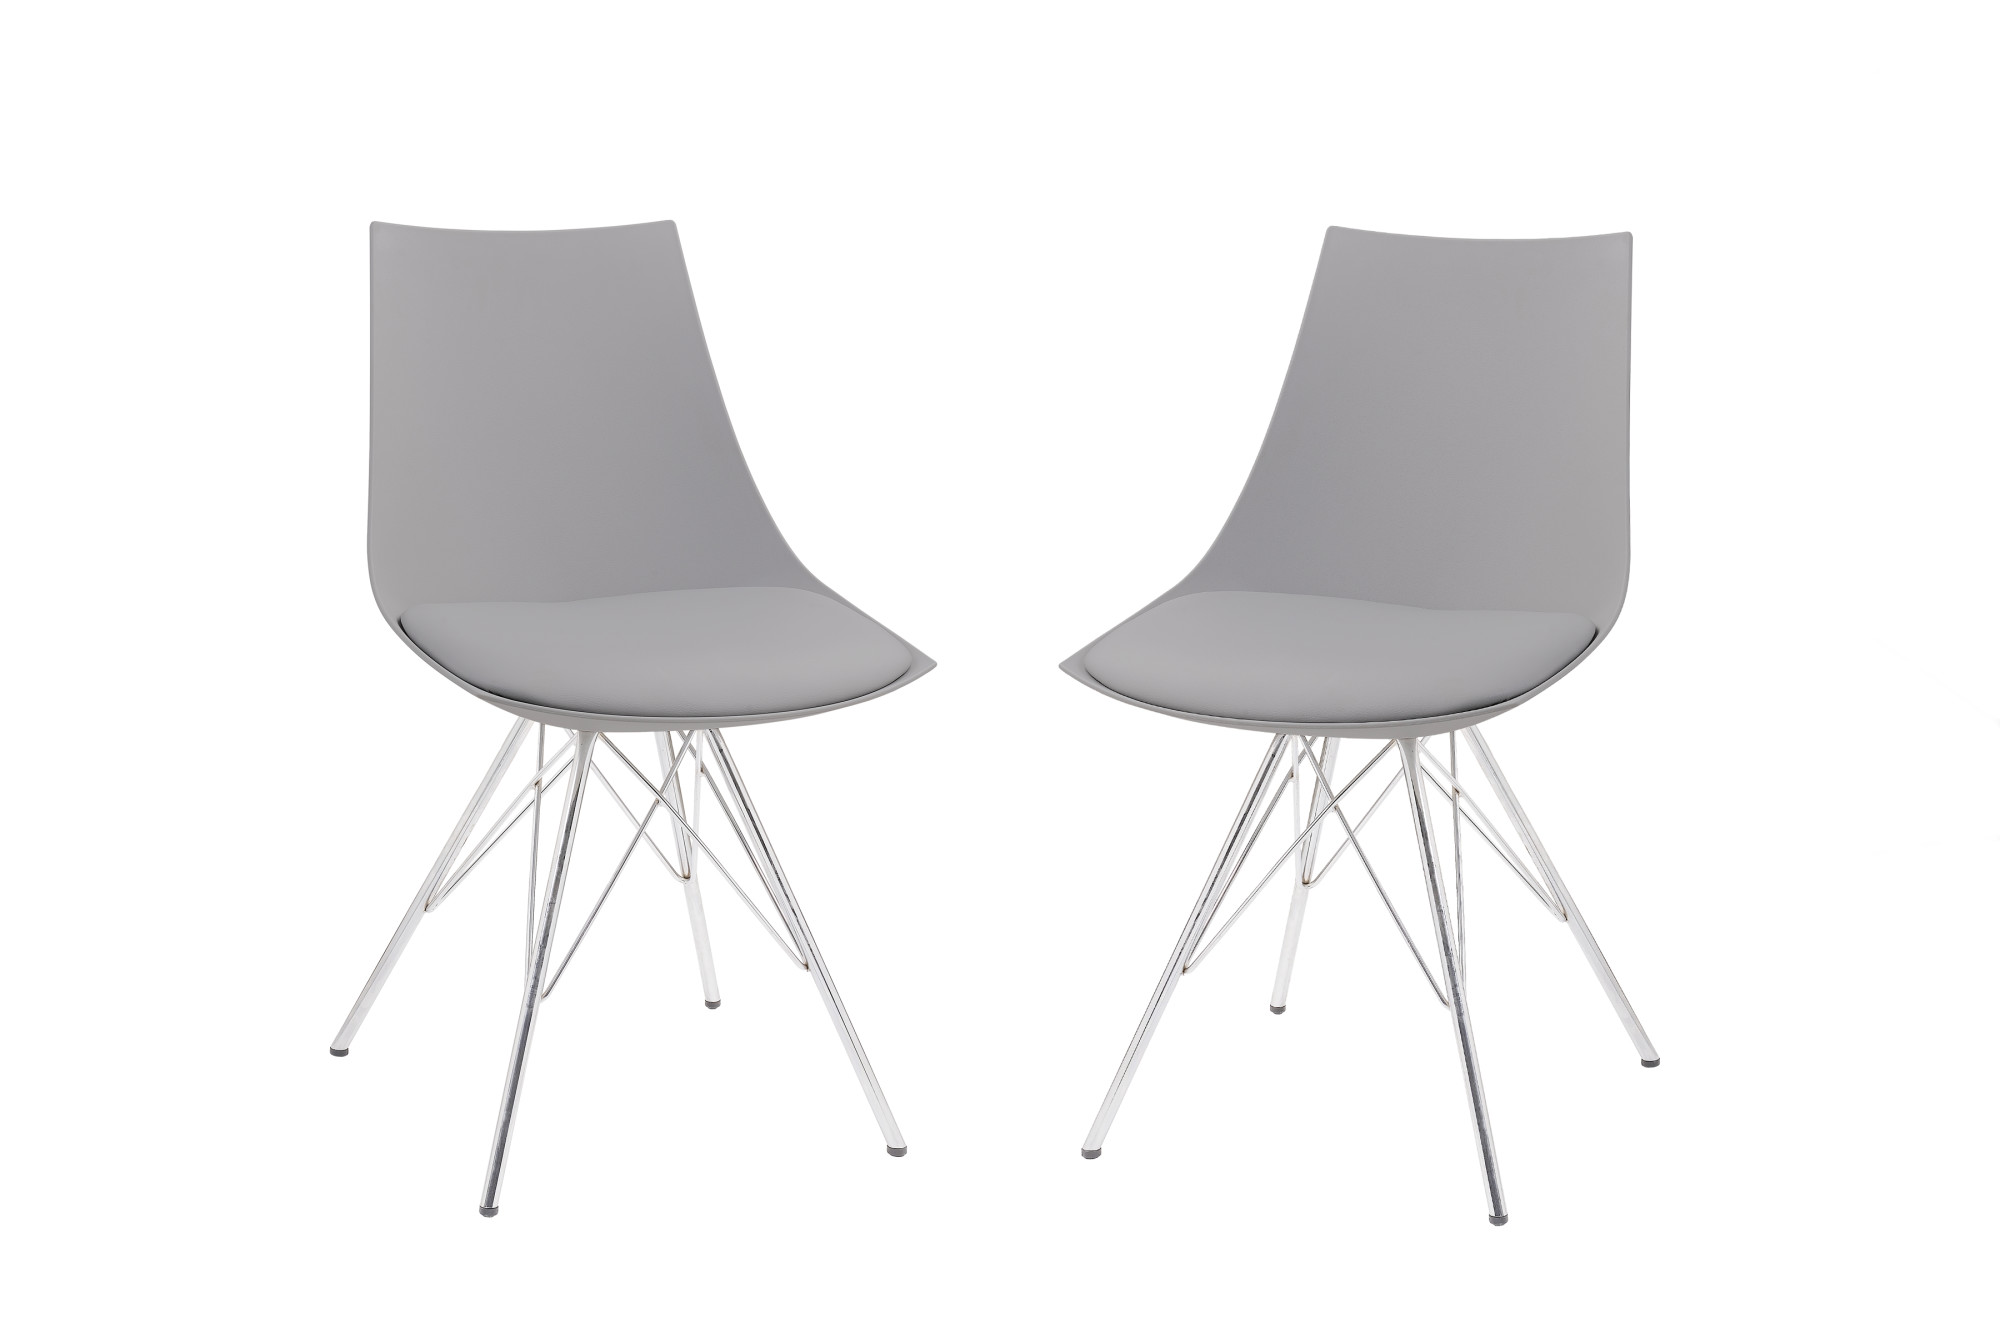 Emerald Home Audrey Gray And Chrome Dining Chair With Molded Plastic Shell,  Cushioned Seat,